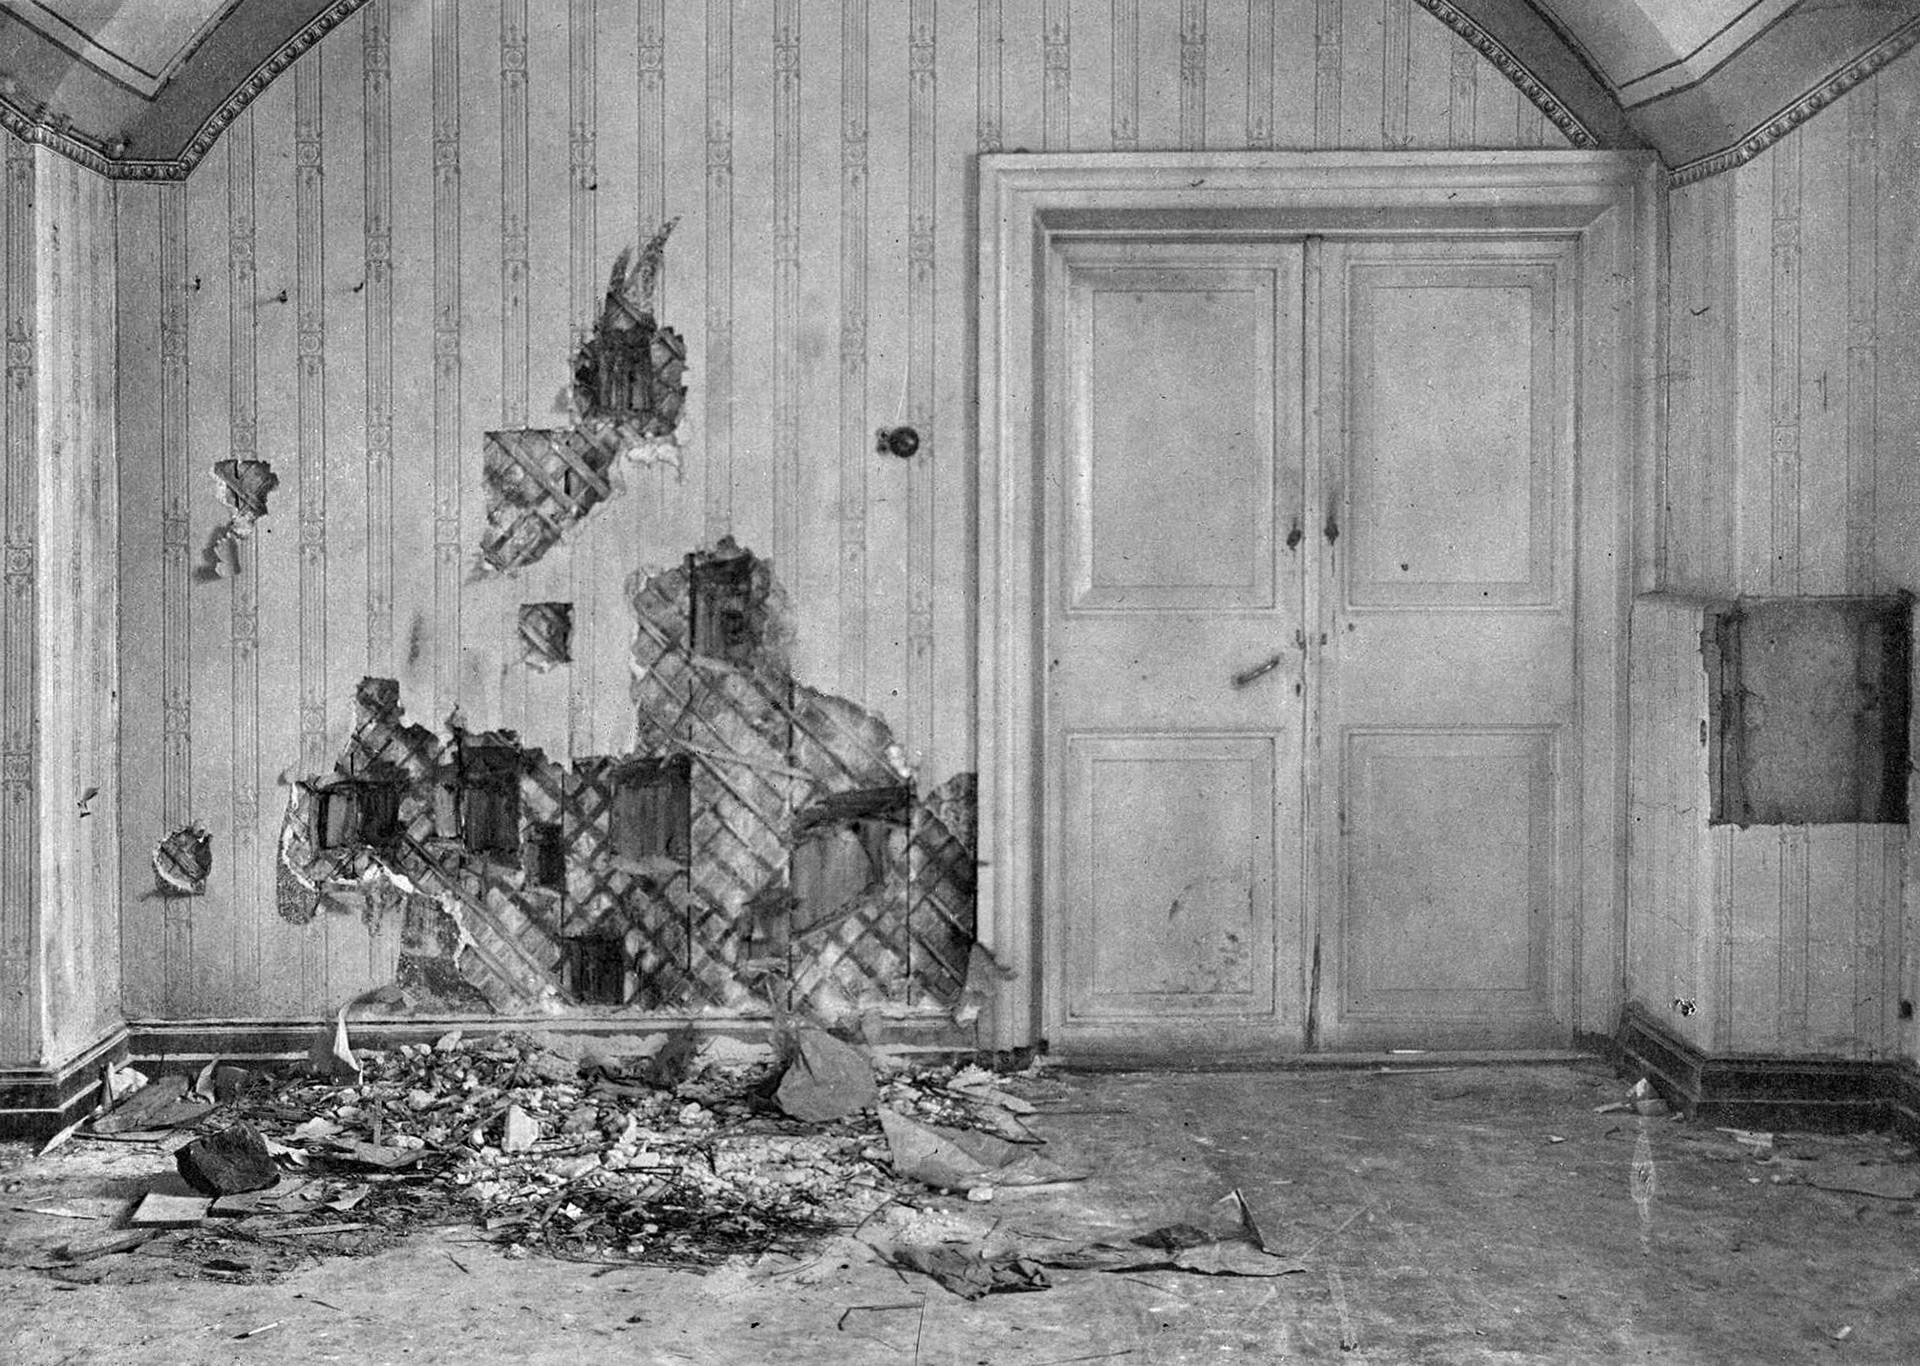 The basement of the Ipatiev house where the Romanov family was killed